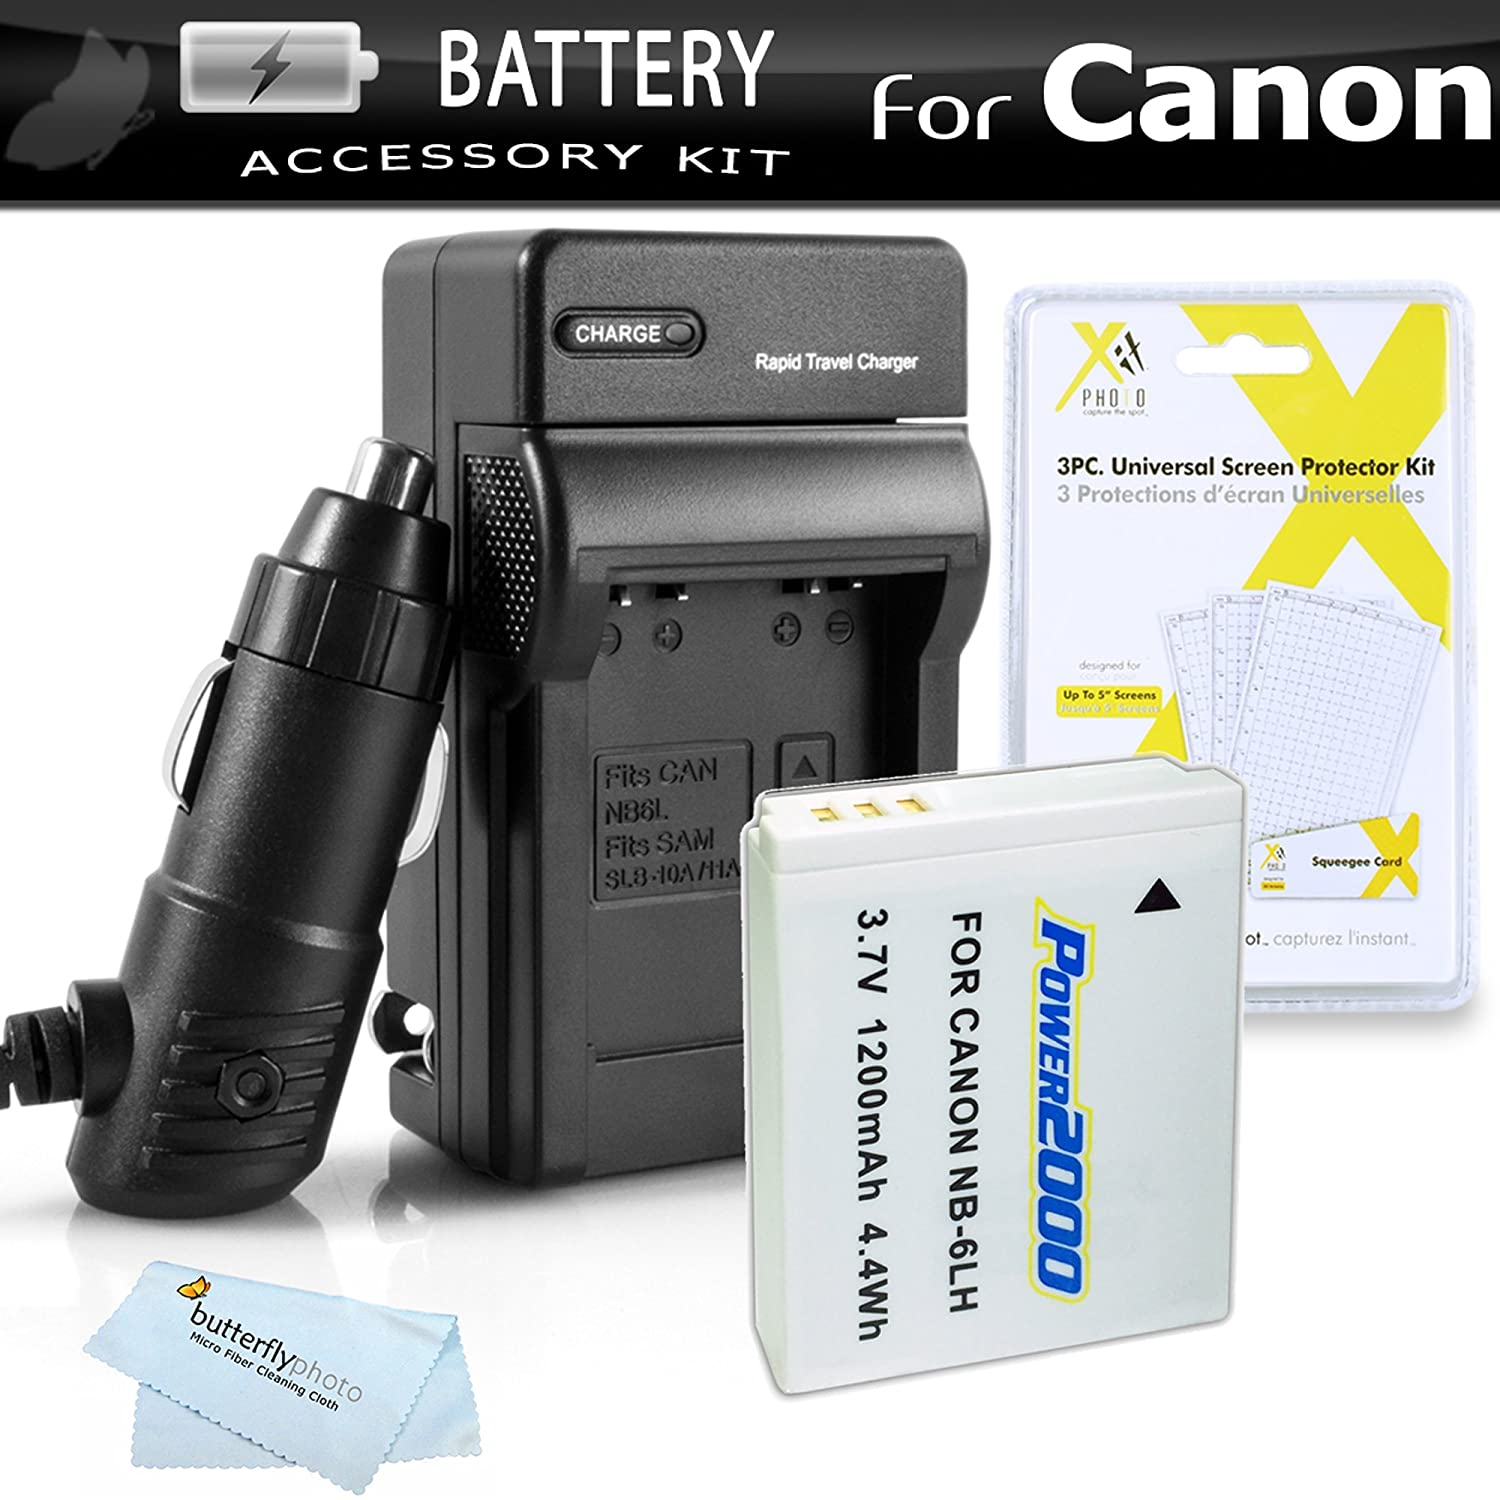 Battery And Charger Kit For Canon PowerShot Canon SX500 IS, SX510 HS, SX520 HS, SX530 HS, SX540 HS, SX170 IS, SX610 HS, SX710 HS, S120, D30 Digital Camera Includes Replacement NB-6L Battery + Charger ButterflyPhoto 4331965346